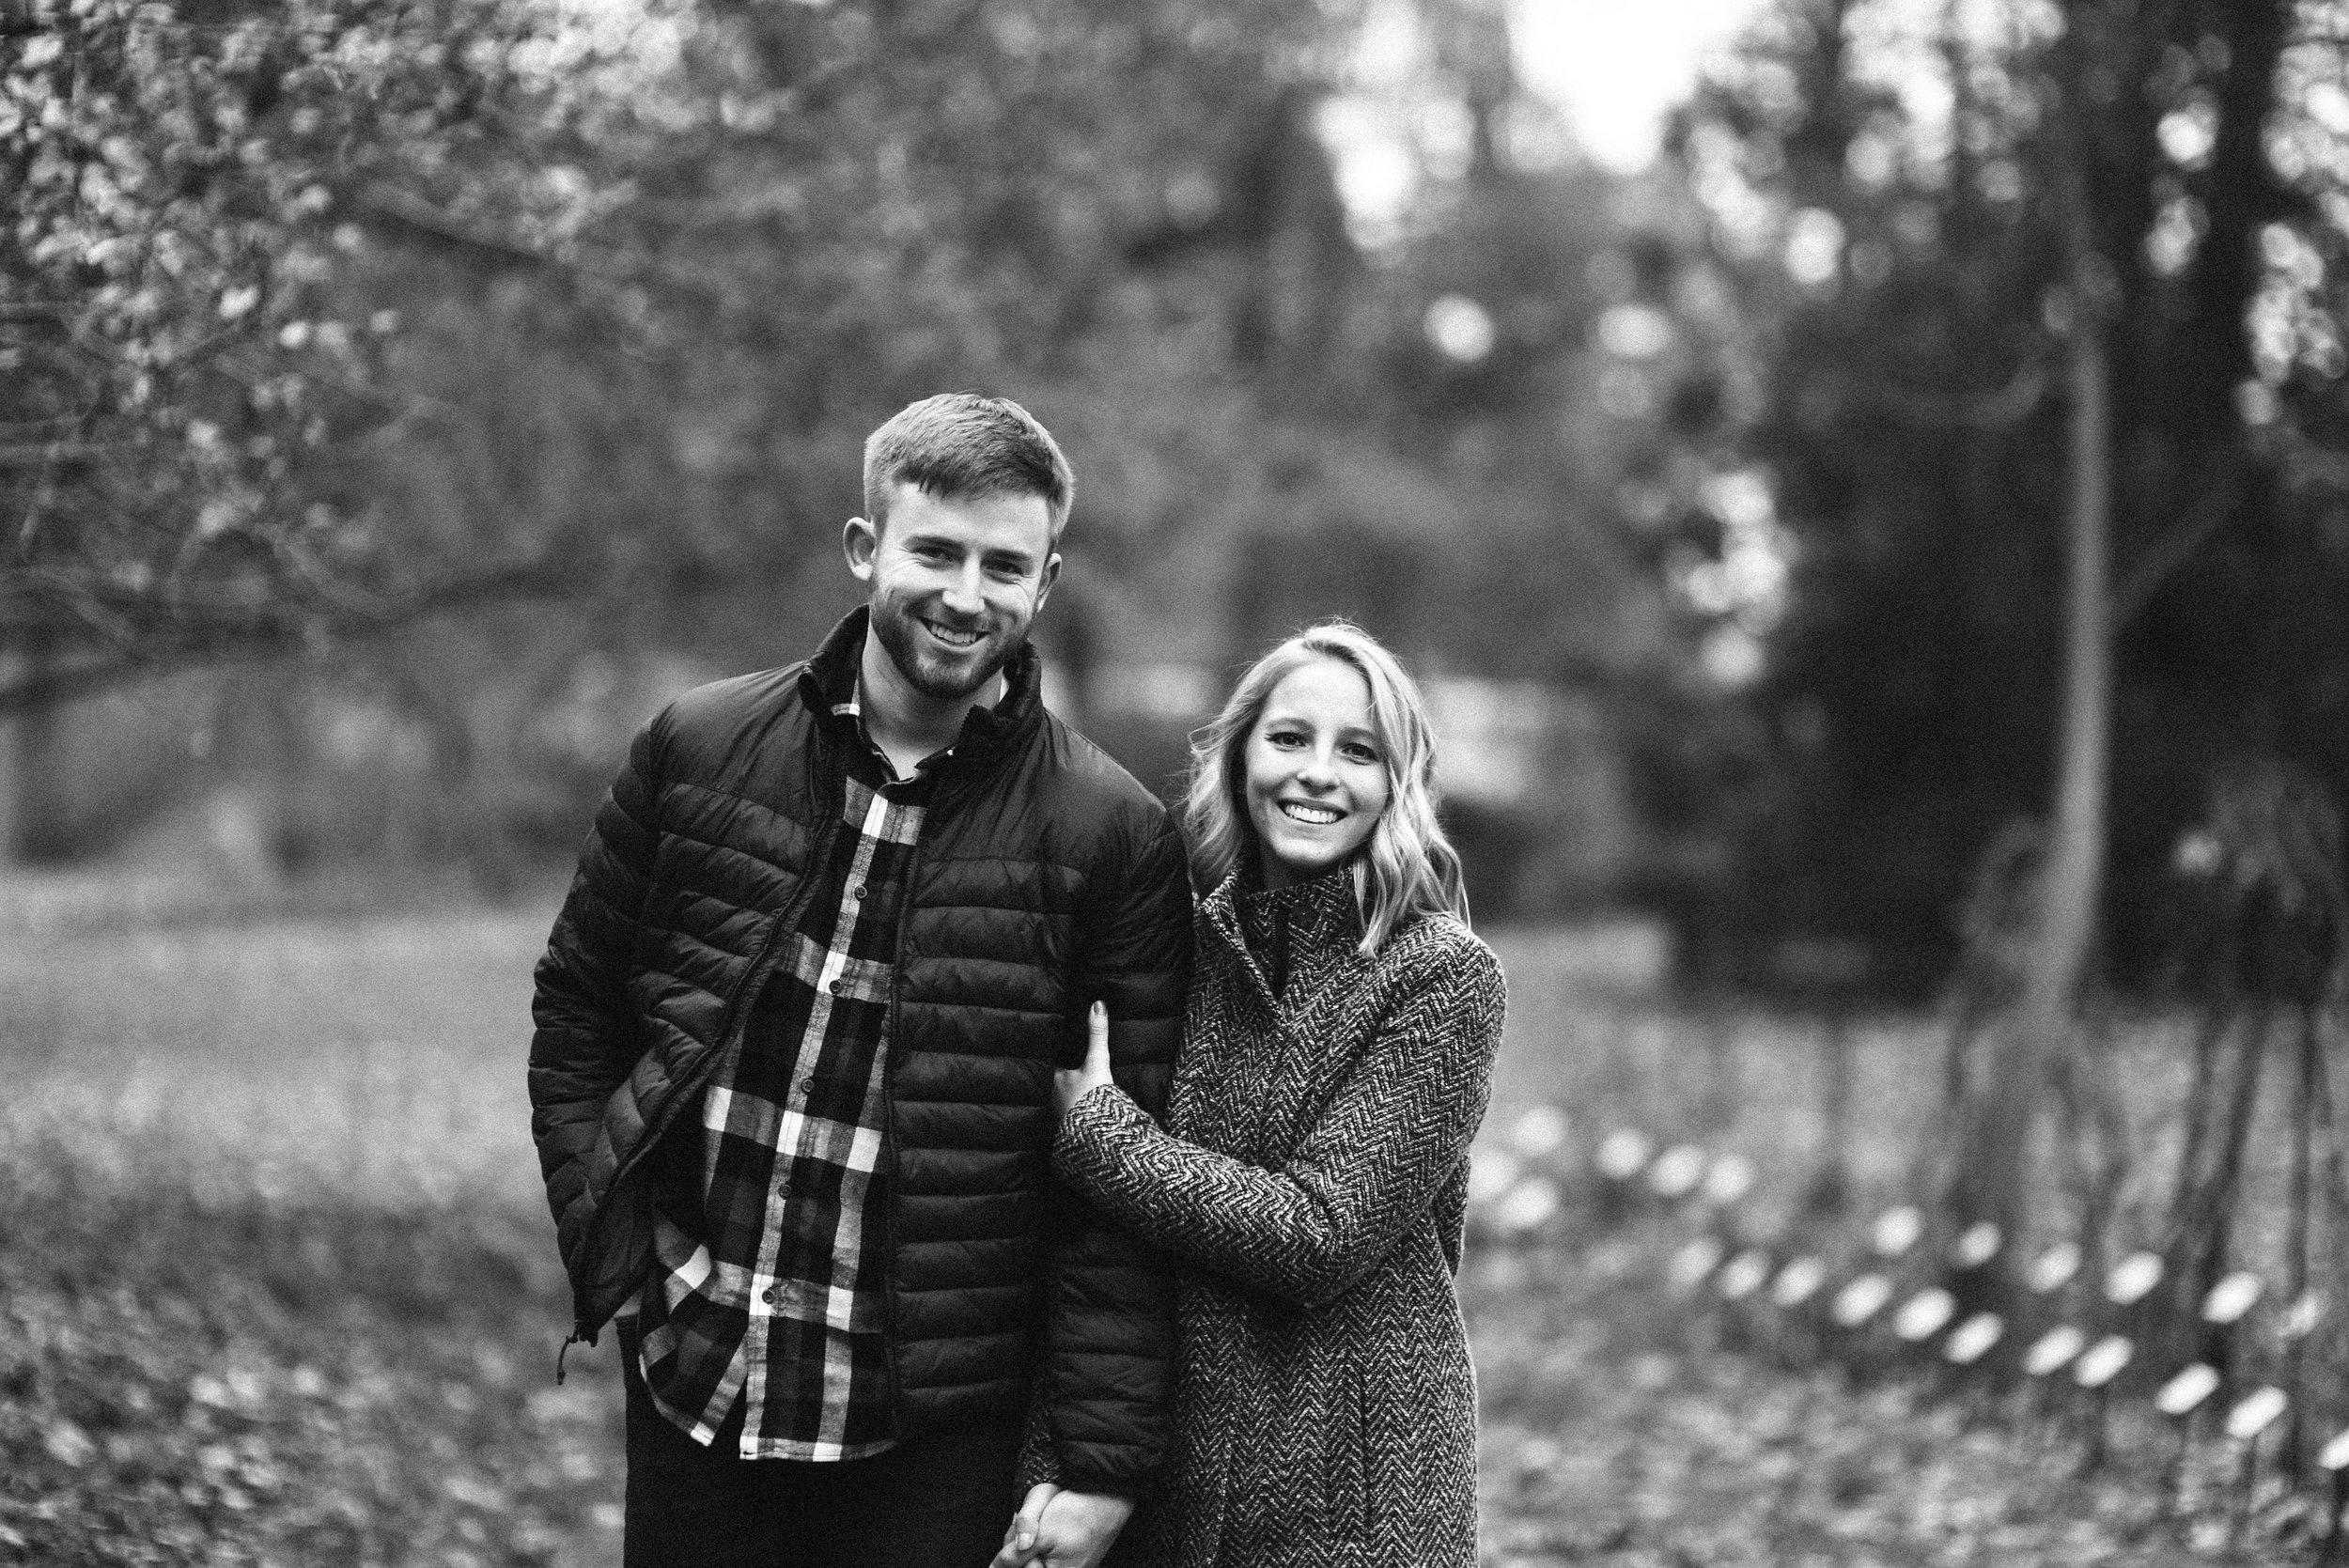 East_Lansing_Engagement_Photos-66.jpg